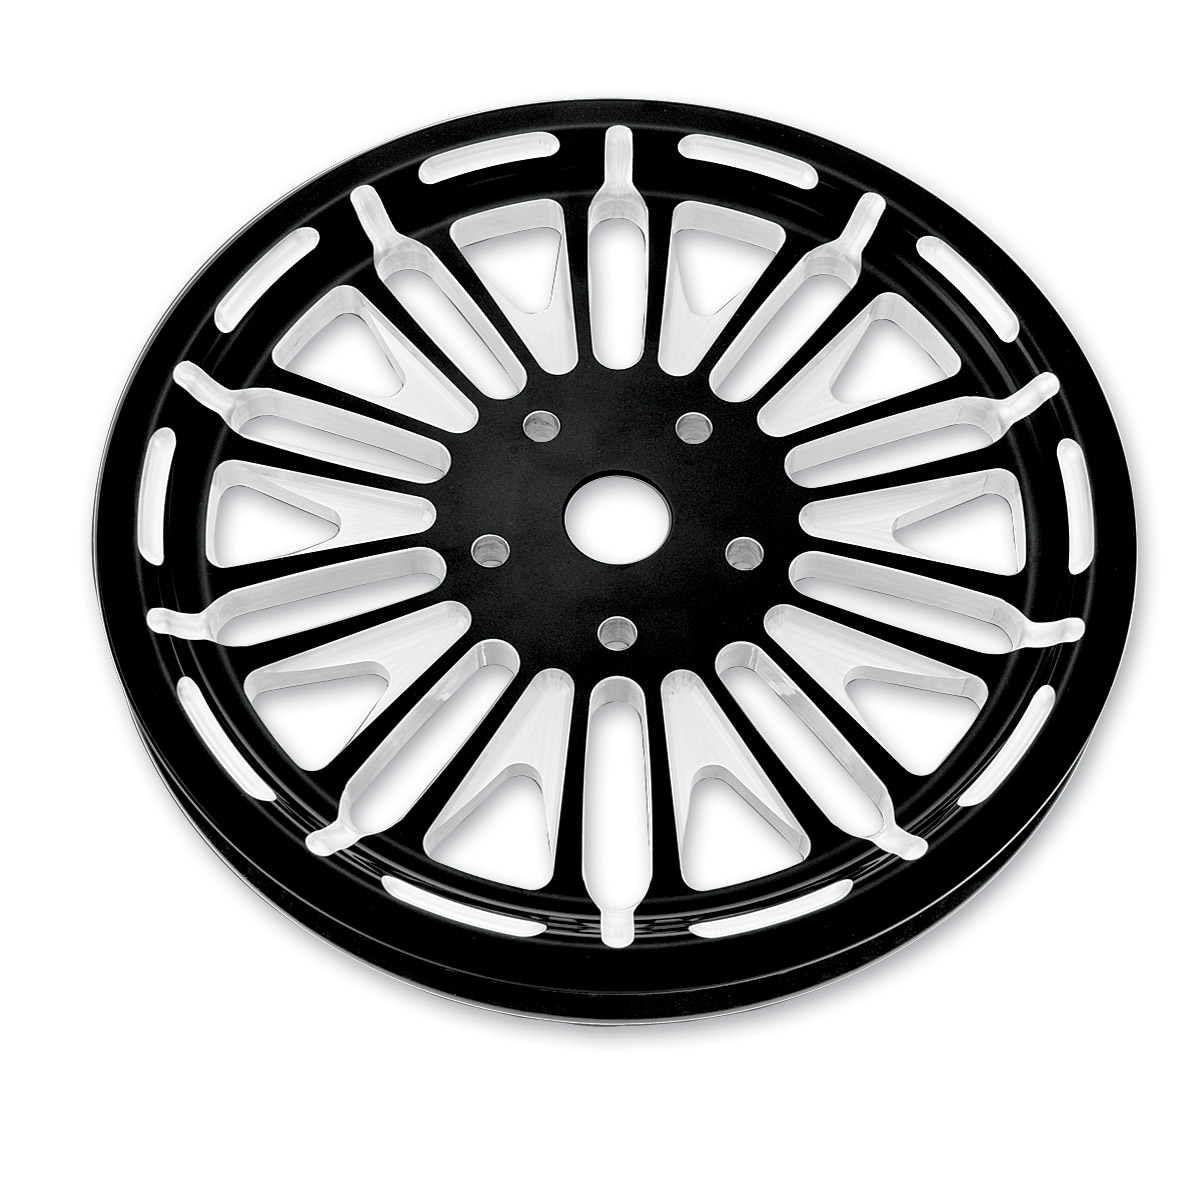 Roland Sands Design Boss Contrast Cut 70T Forged Aluminum Pulley